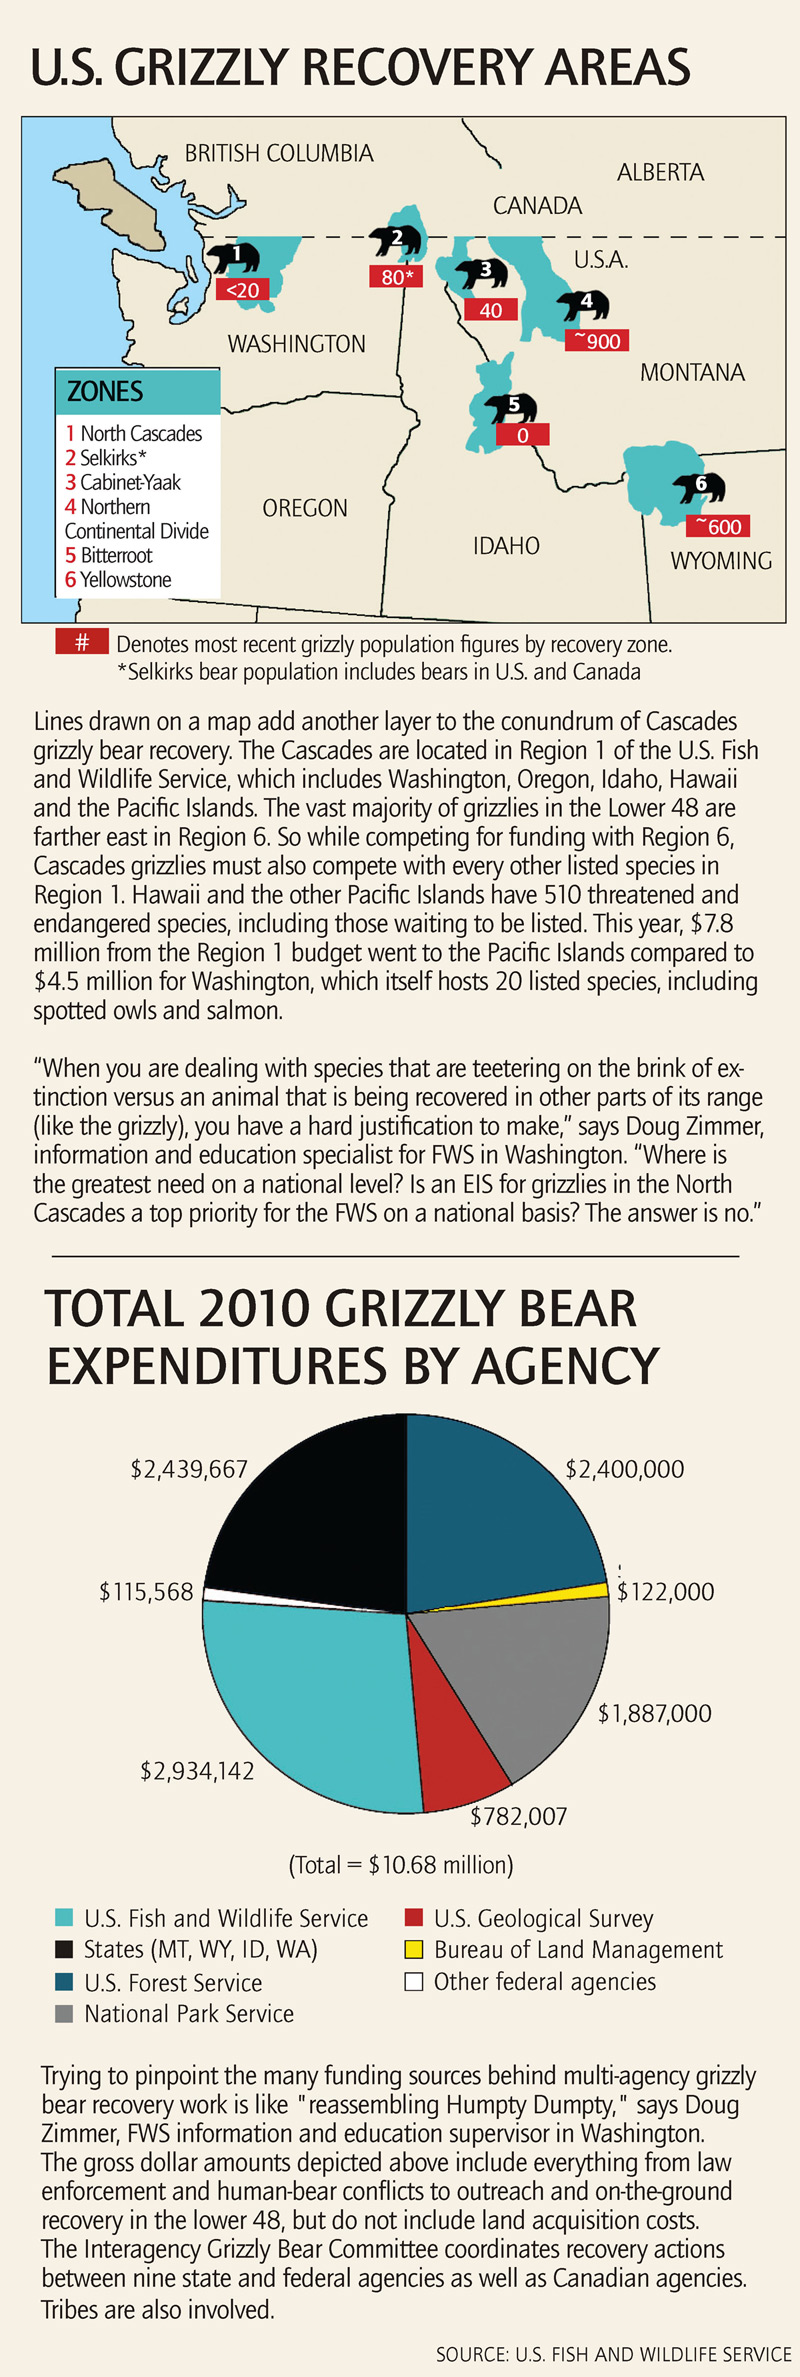 U.S. grizzly recovery areas